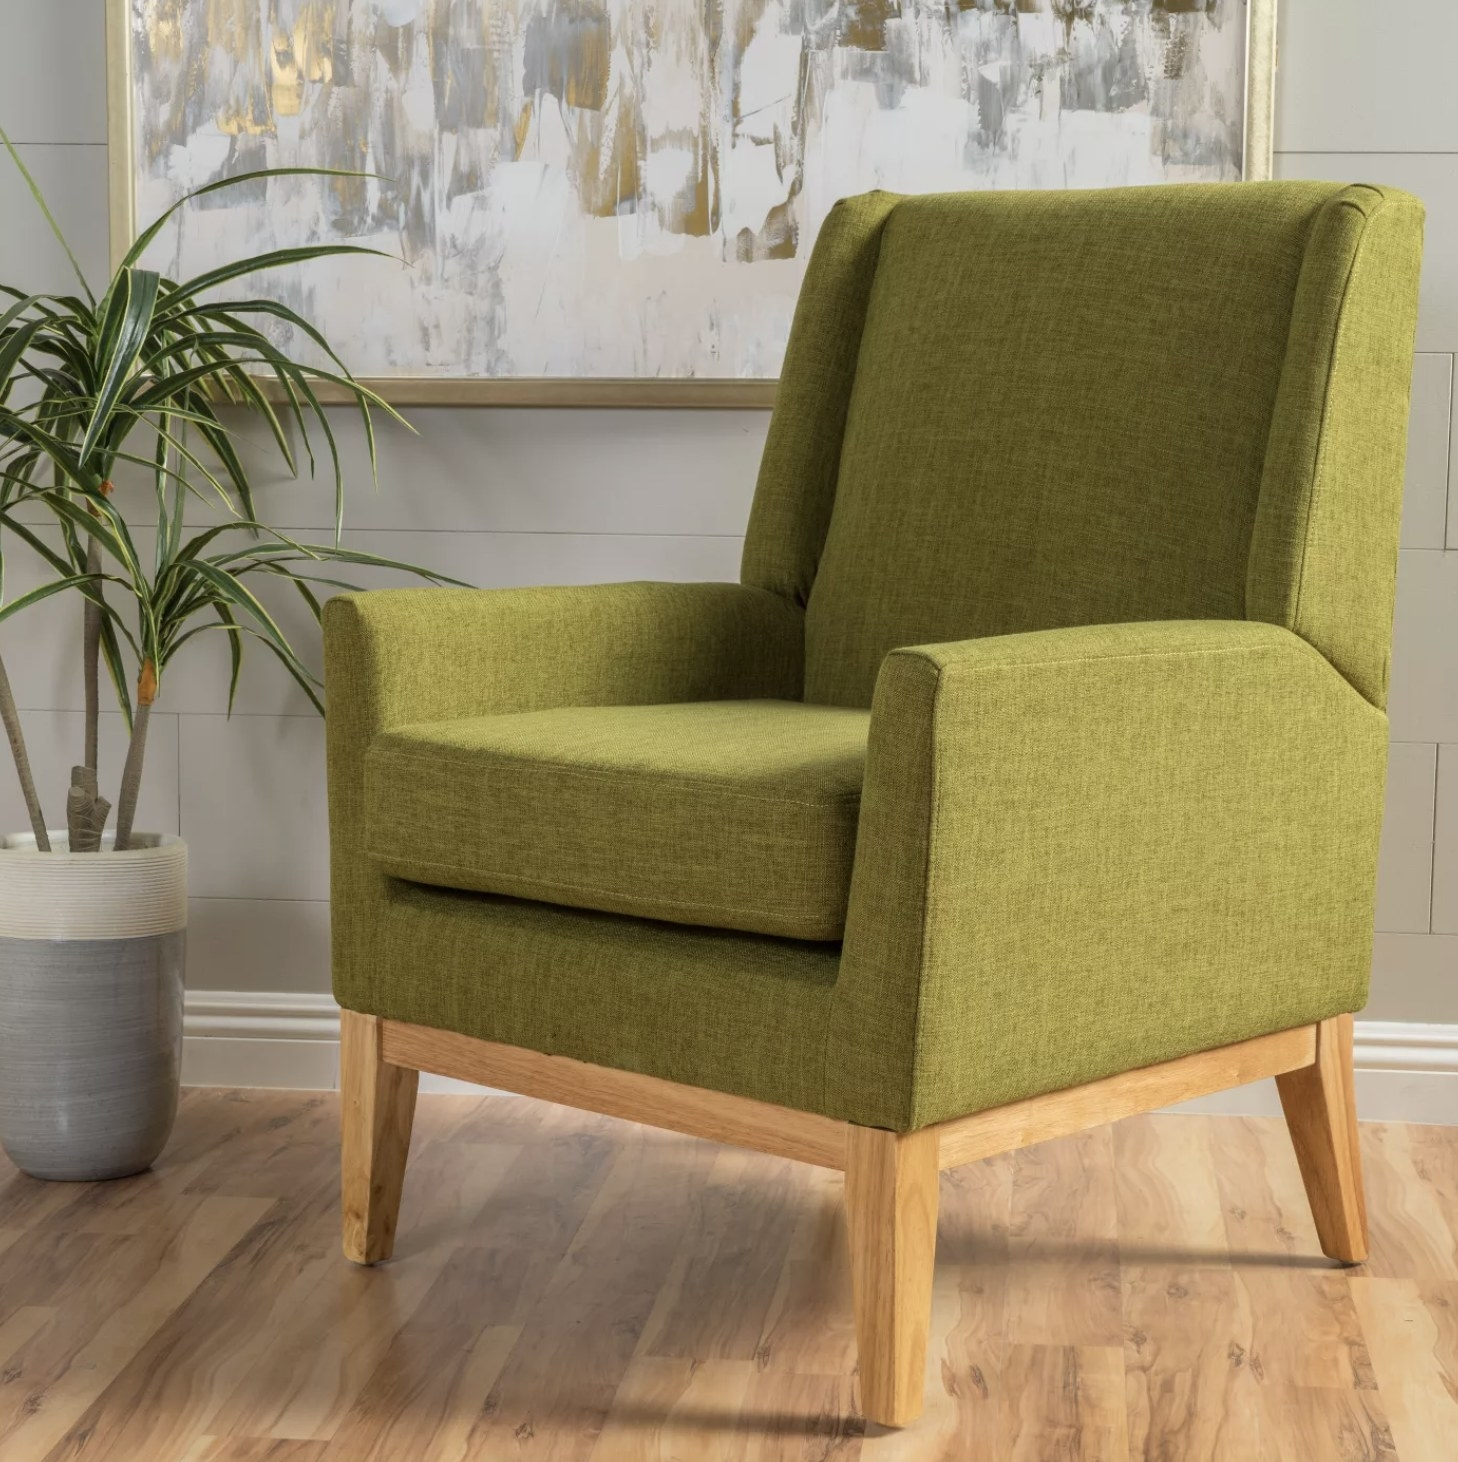 A green upholstered chair with light wood legs